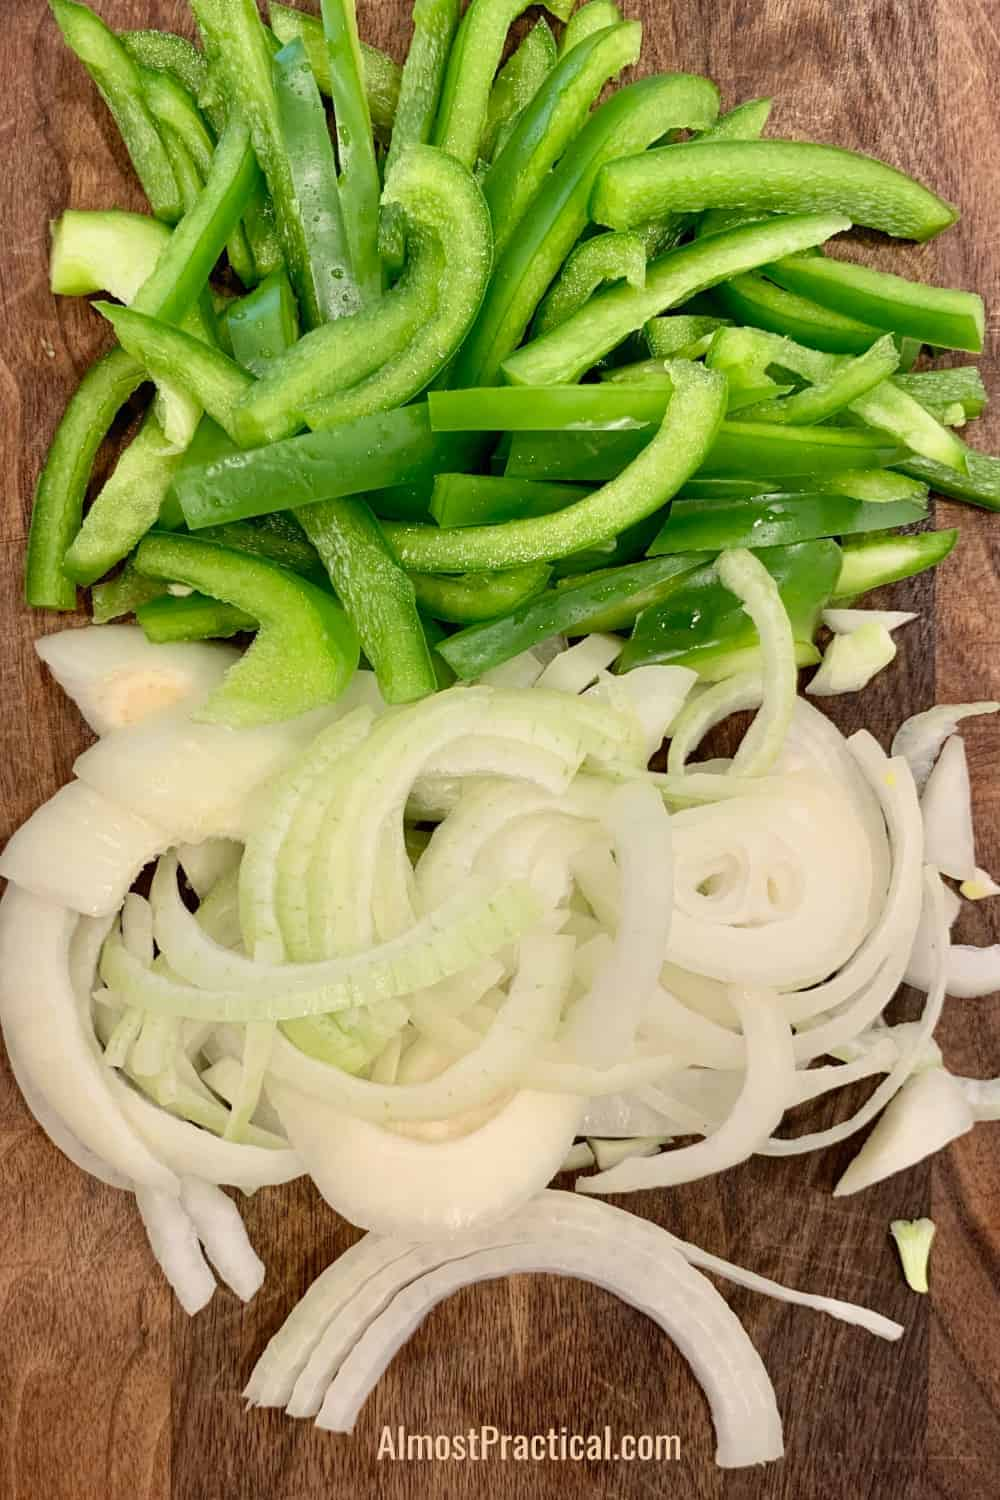 thin strips of sliced fresh onions and green peppers